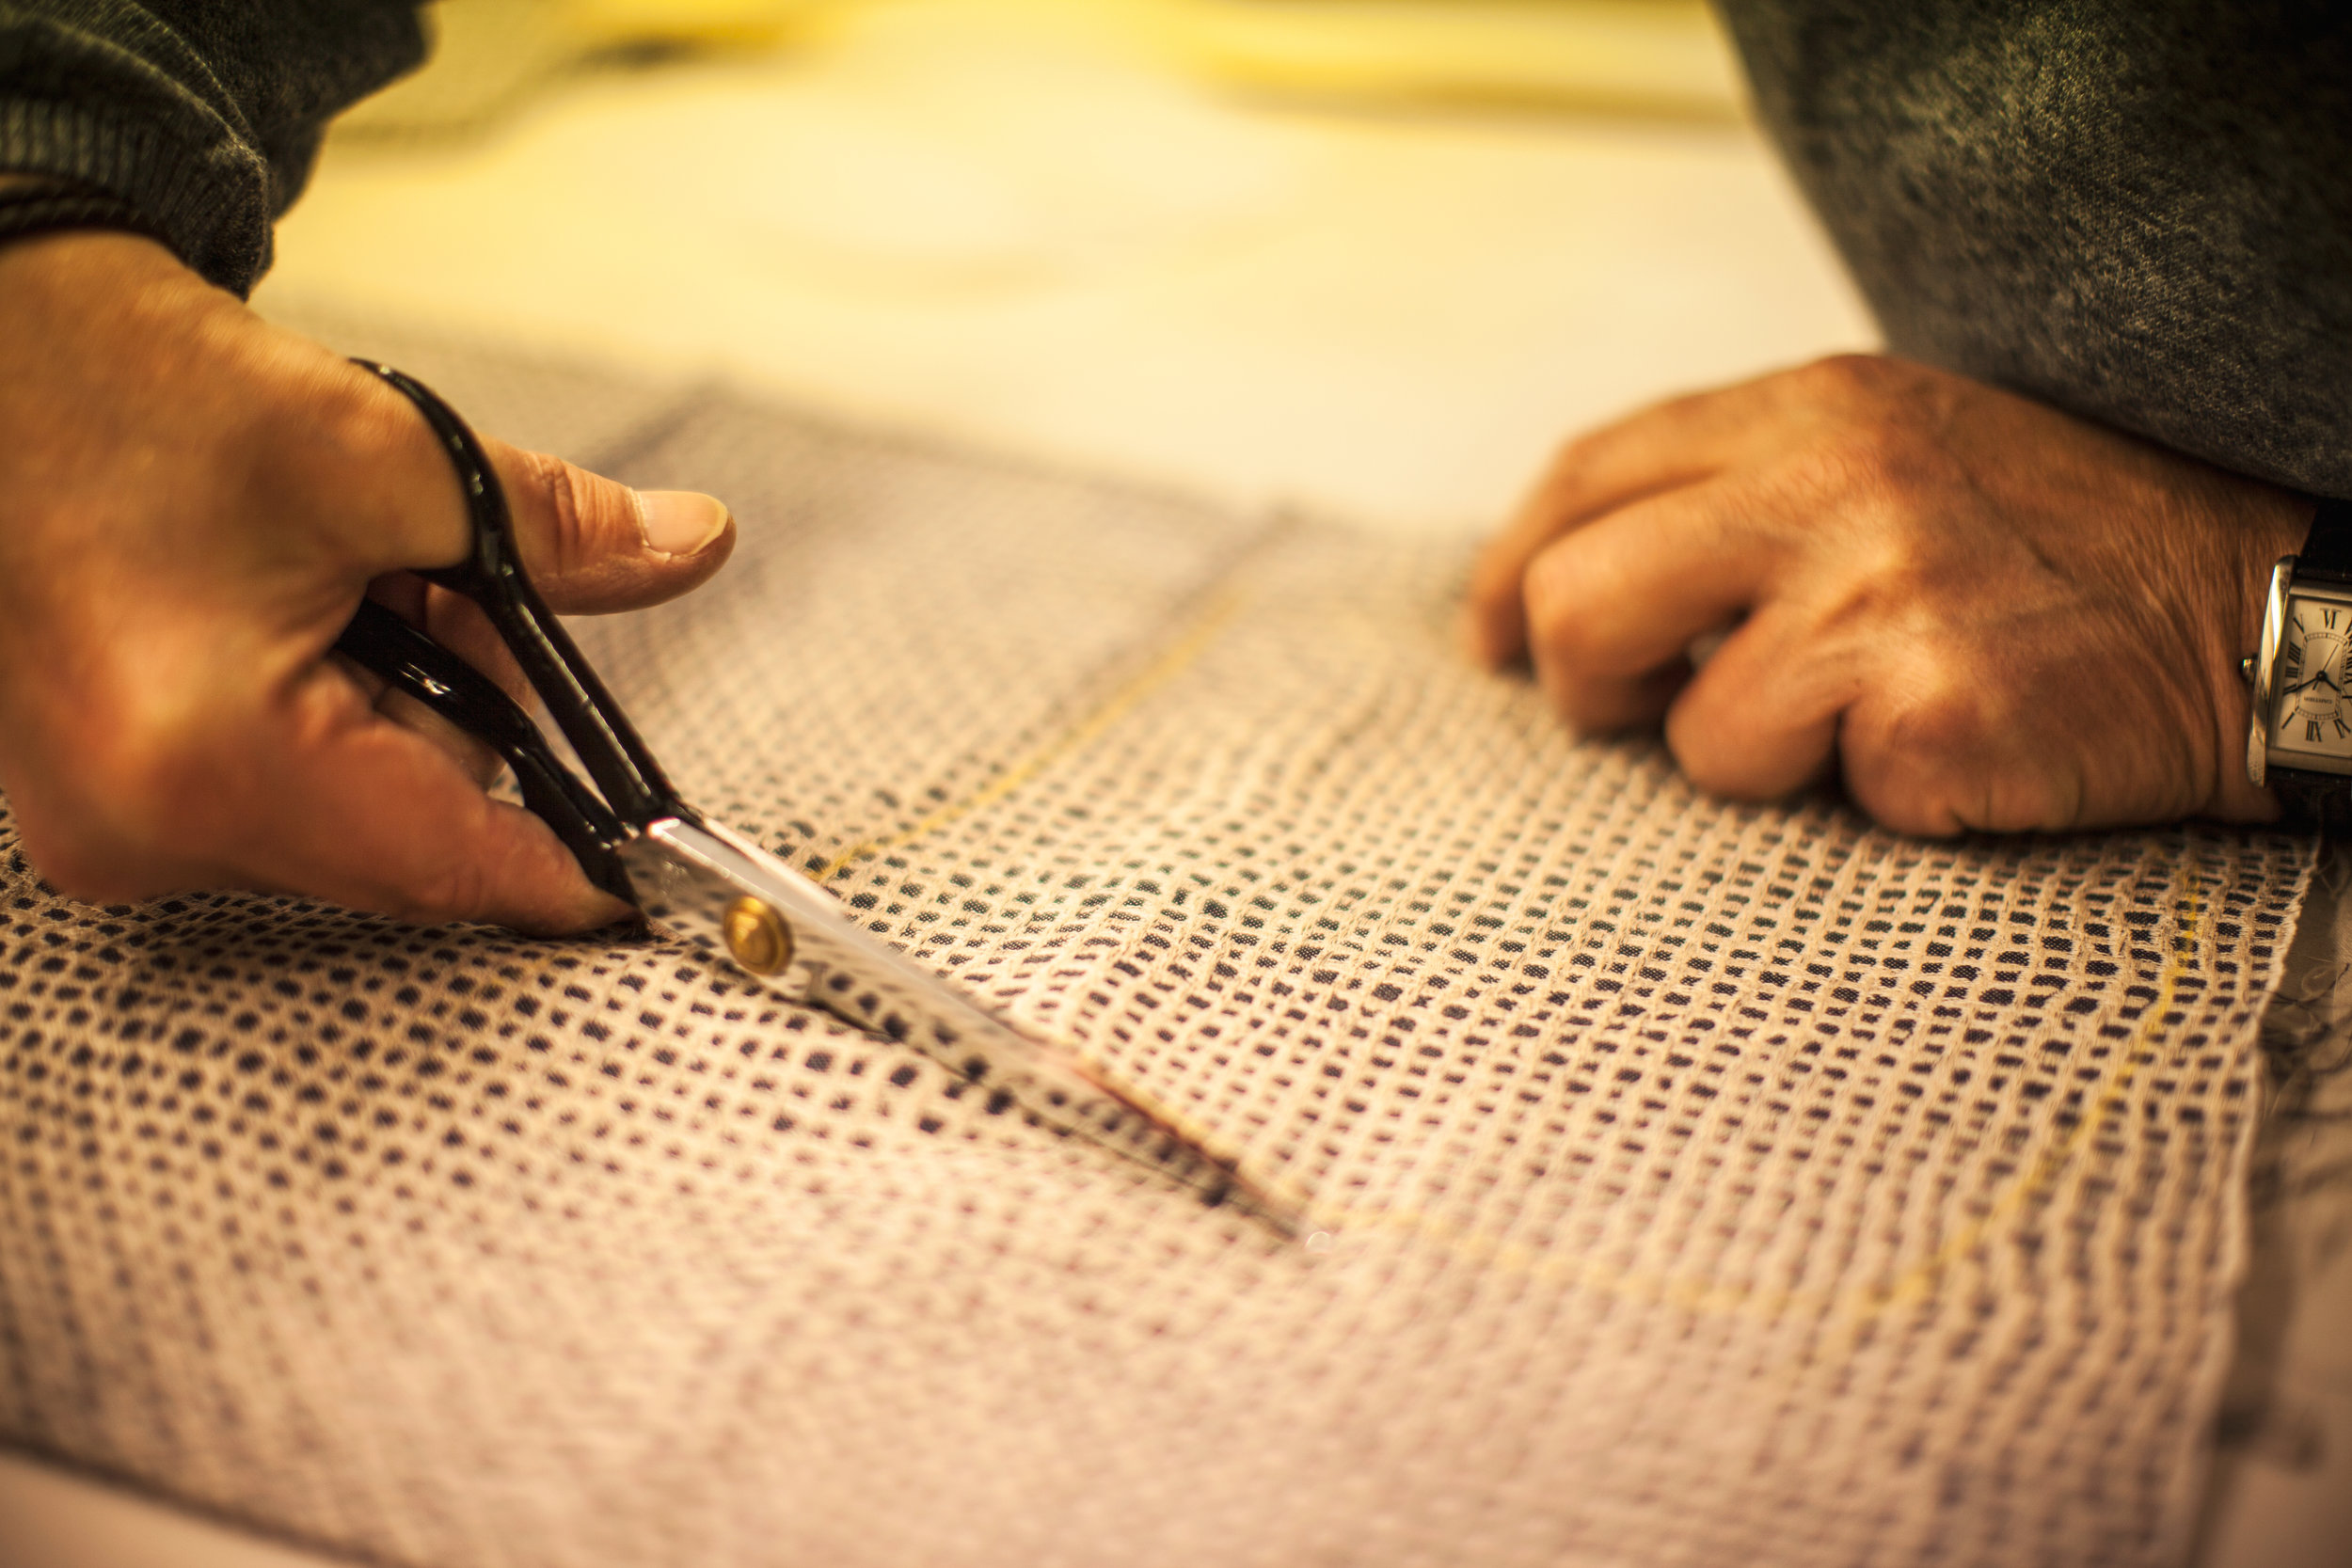 Cutting - Every client has their own recorded paper pattern based on the initial set of measurements which is subsequently hand cut and refined through the fitting process. Aside from the pattern cutting, the canvassing is another crucial element in the process of creating our bespoke suits. Canvassing is the art of creating a horsehair hand stitched base that forms the shape of the client's bespoke coat and will mould to their physique with wear. This floating canvassed base gives all our suits a natural feeling and comfort.